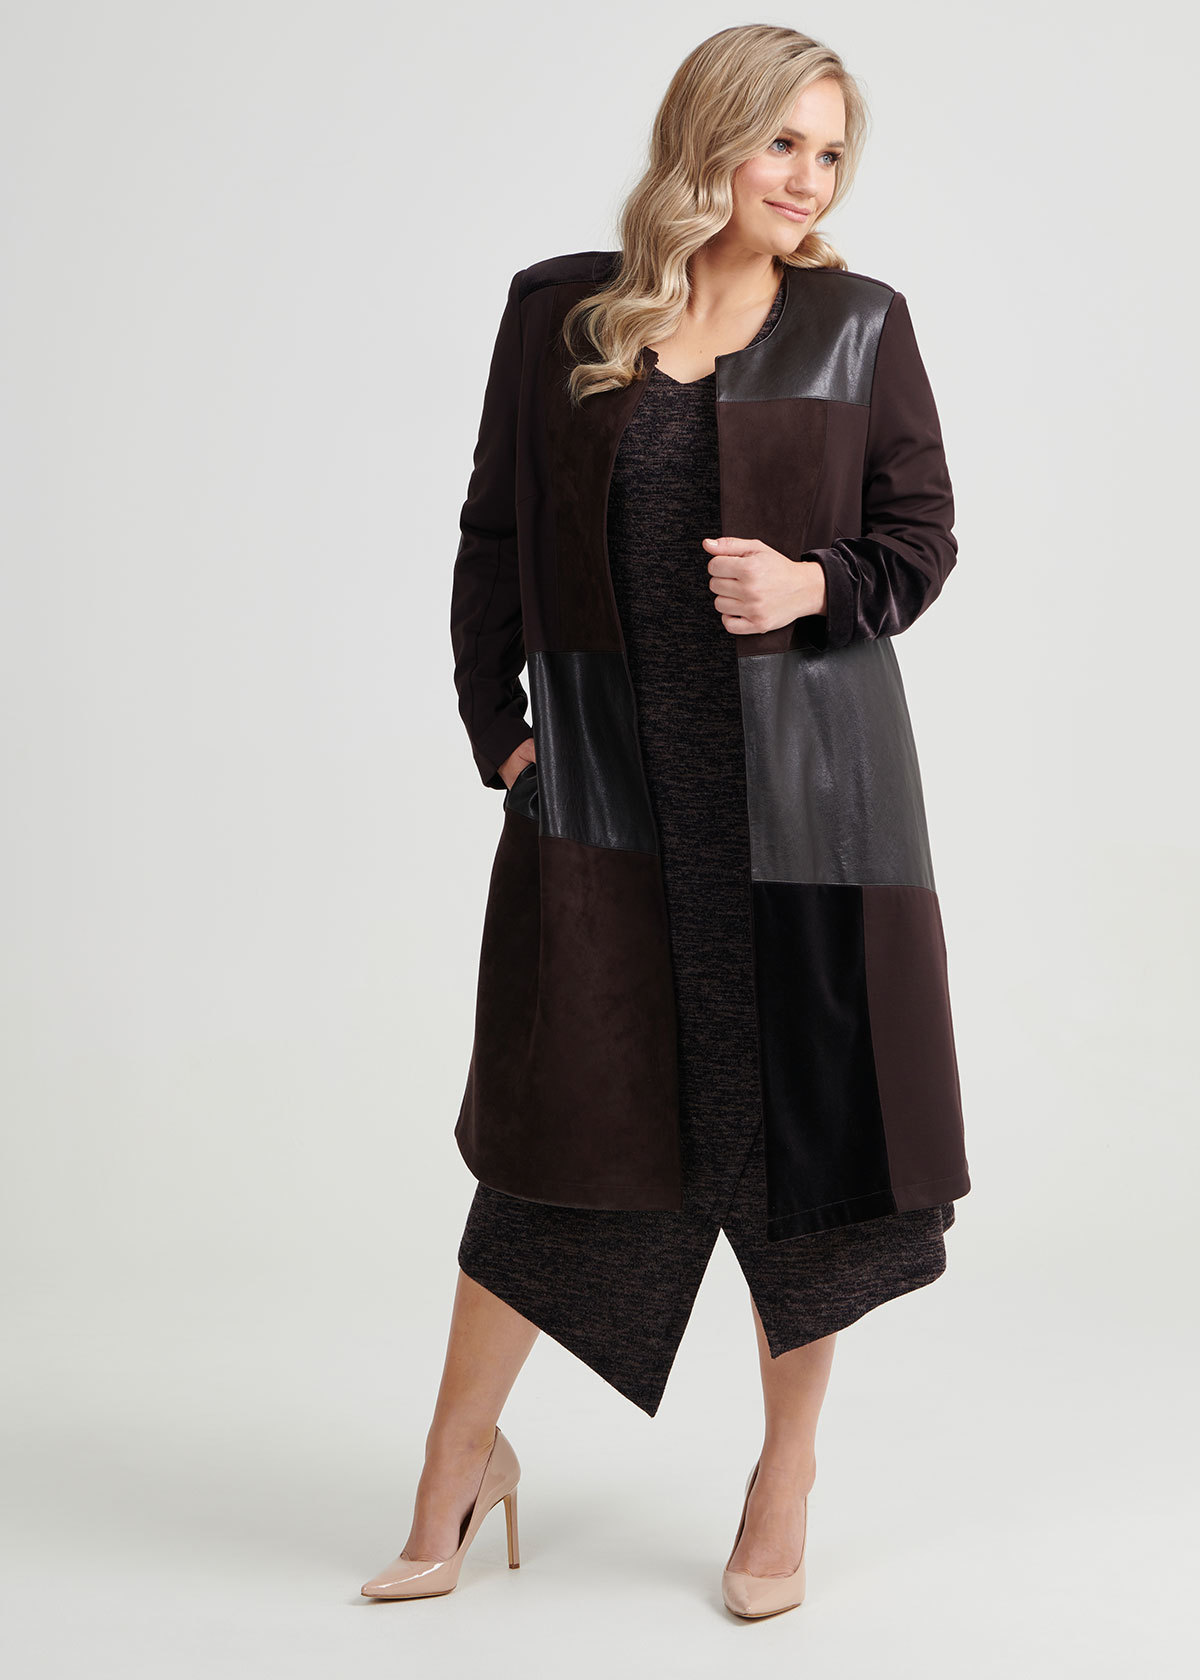 Shop Mix It Up Coat In Black In Sizes 12 To 24